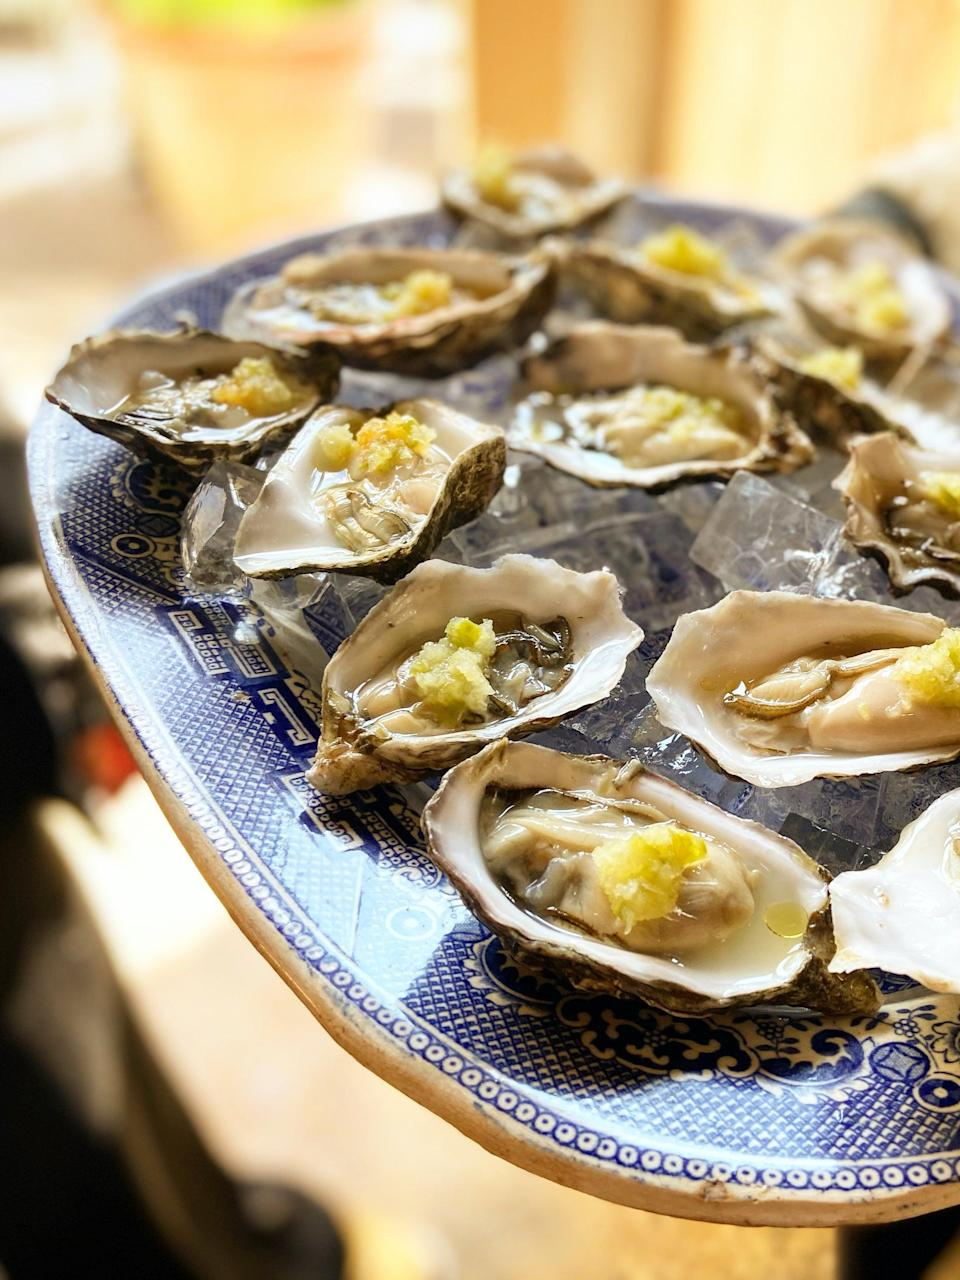 Porthilly oysters, sweetened with apple and salted with soy (The Rocket Store)